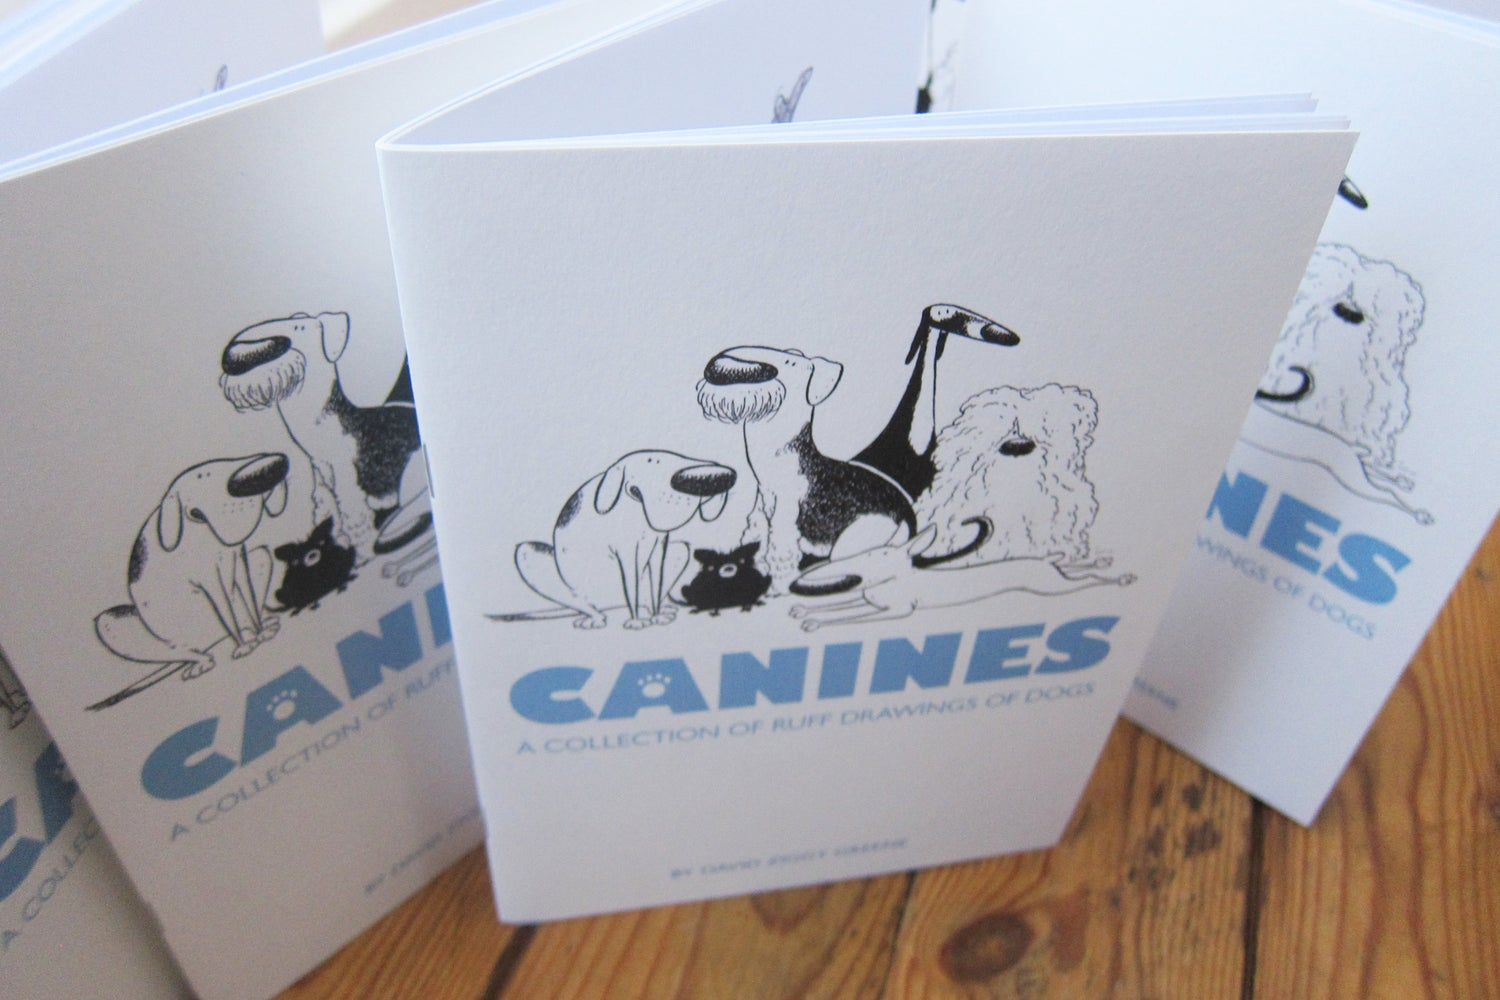 Canines - A collection of dog sketches (Charity item)